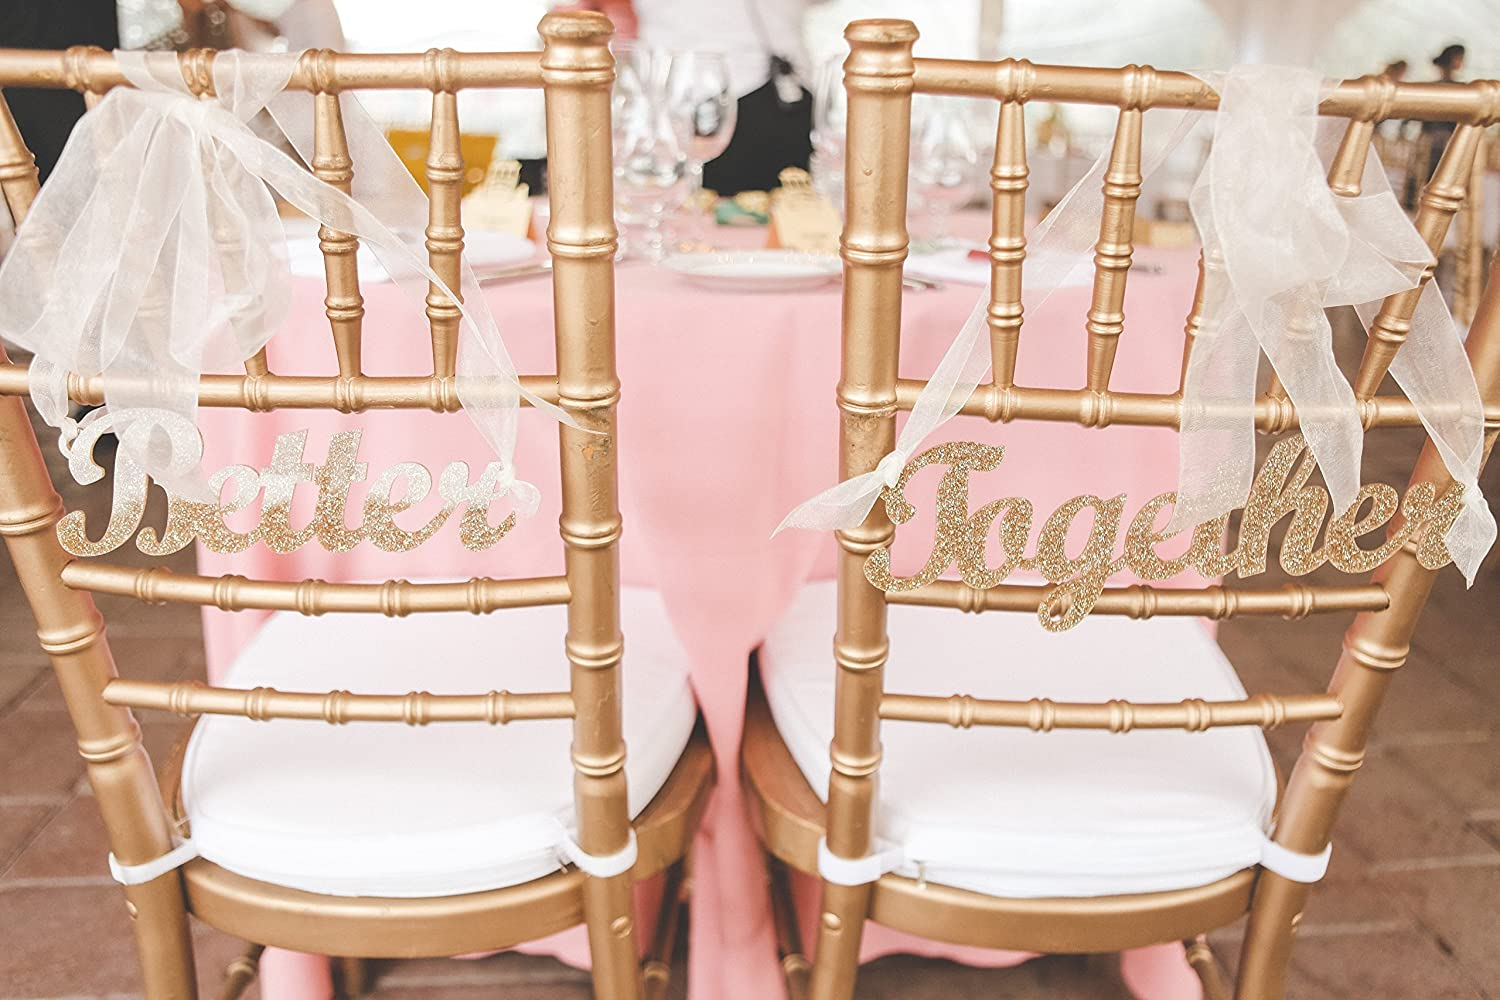 """B016QUH20I Wedding Chair Signs """"Better Together"""" Signs, Hanging Chair Signs for Wedding Chair Decor for Bride and Groom (Item - CHB100) 91jheQ28WkL"""